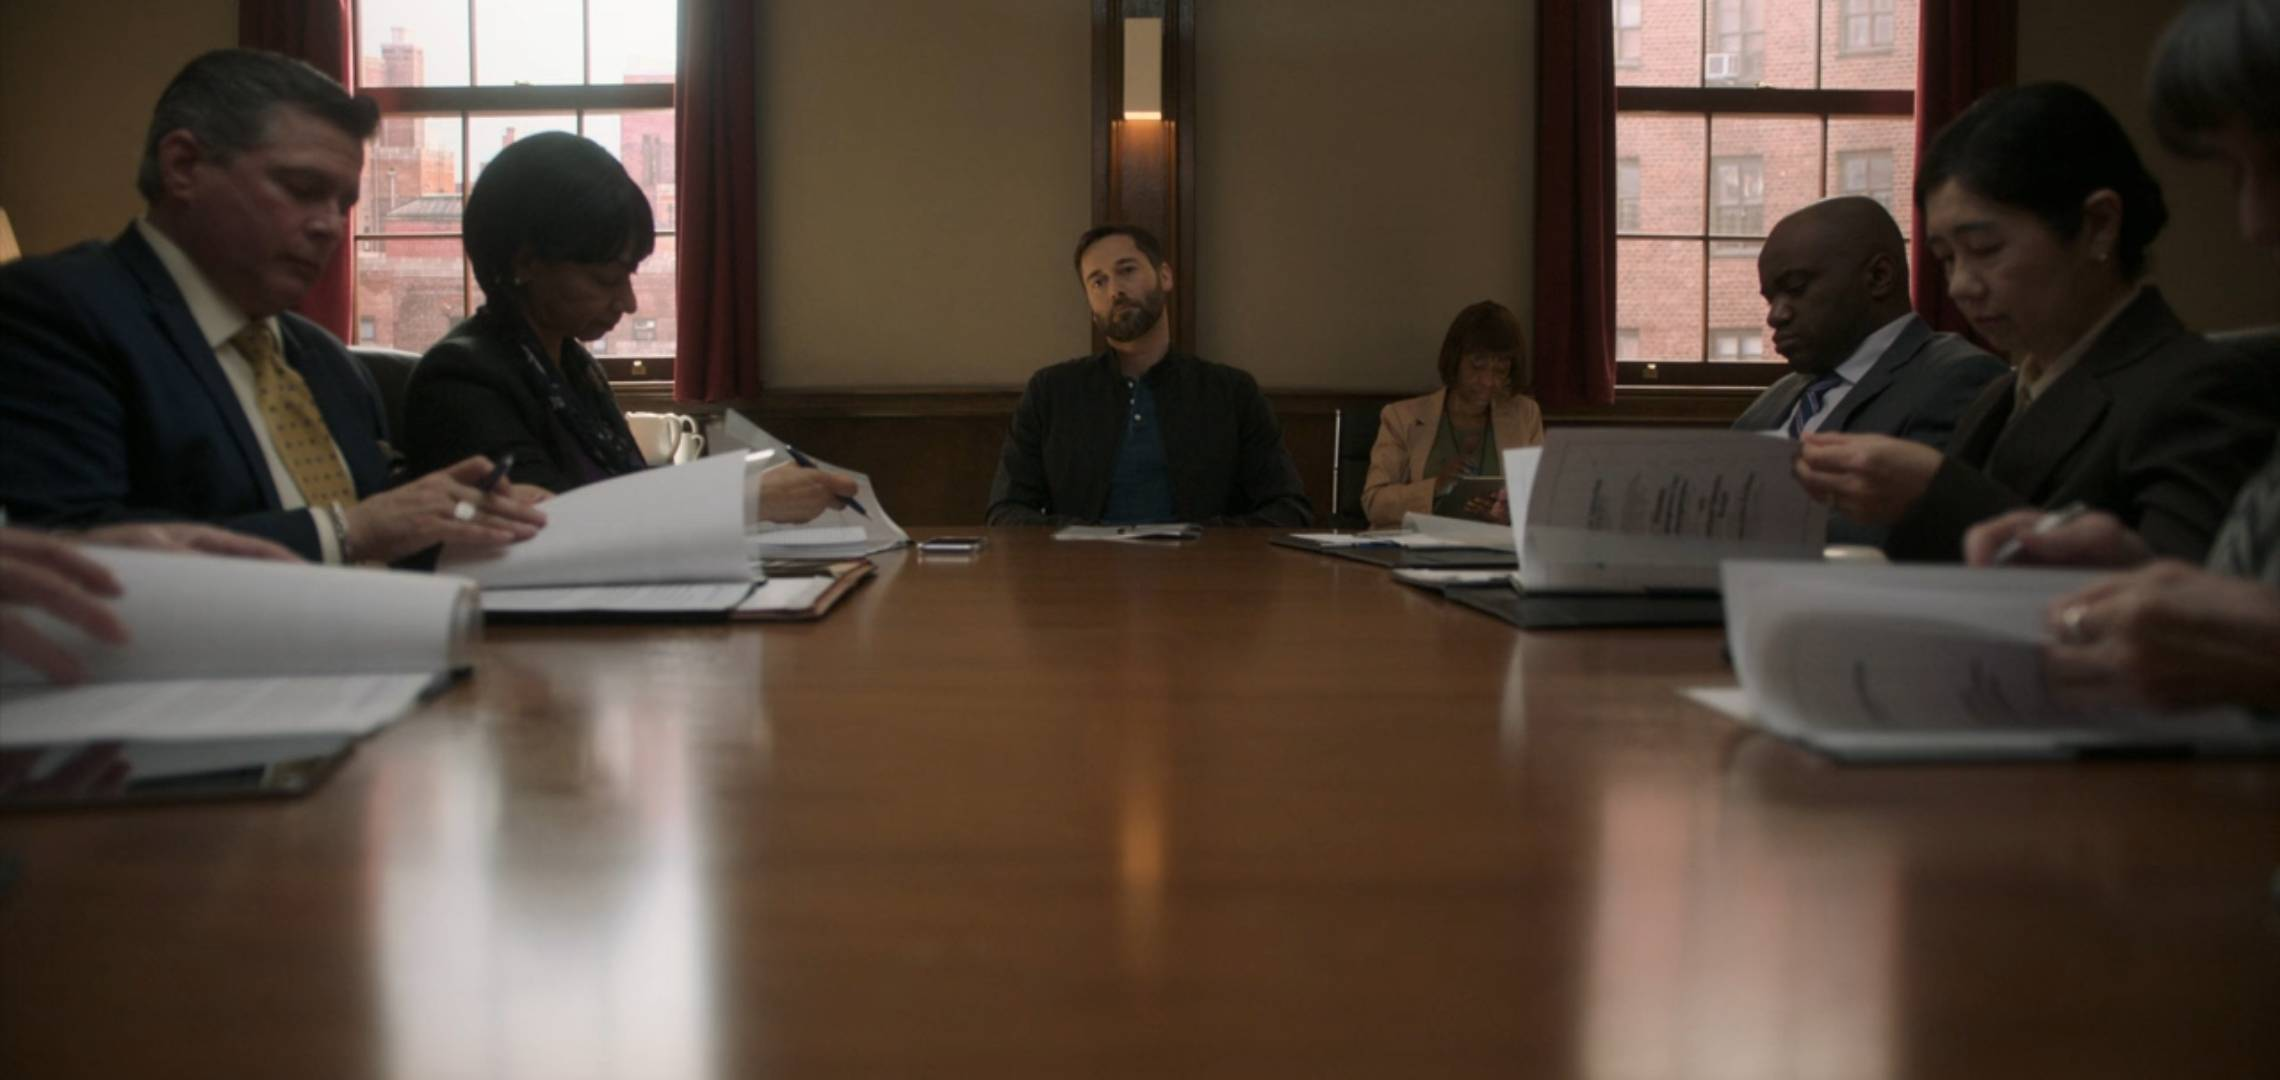 When Is New Amsterdam Season 4 Coming?